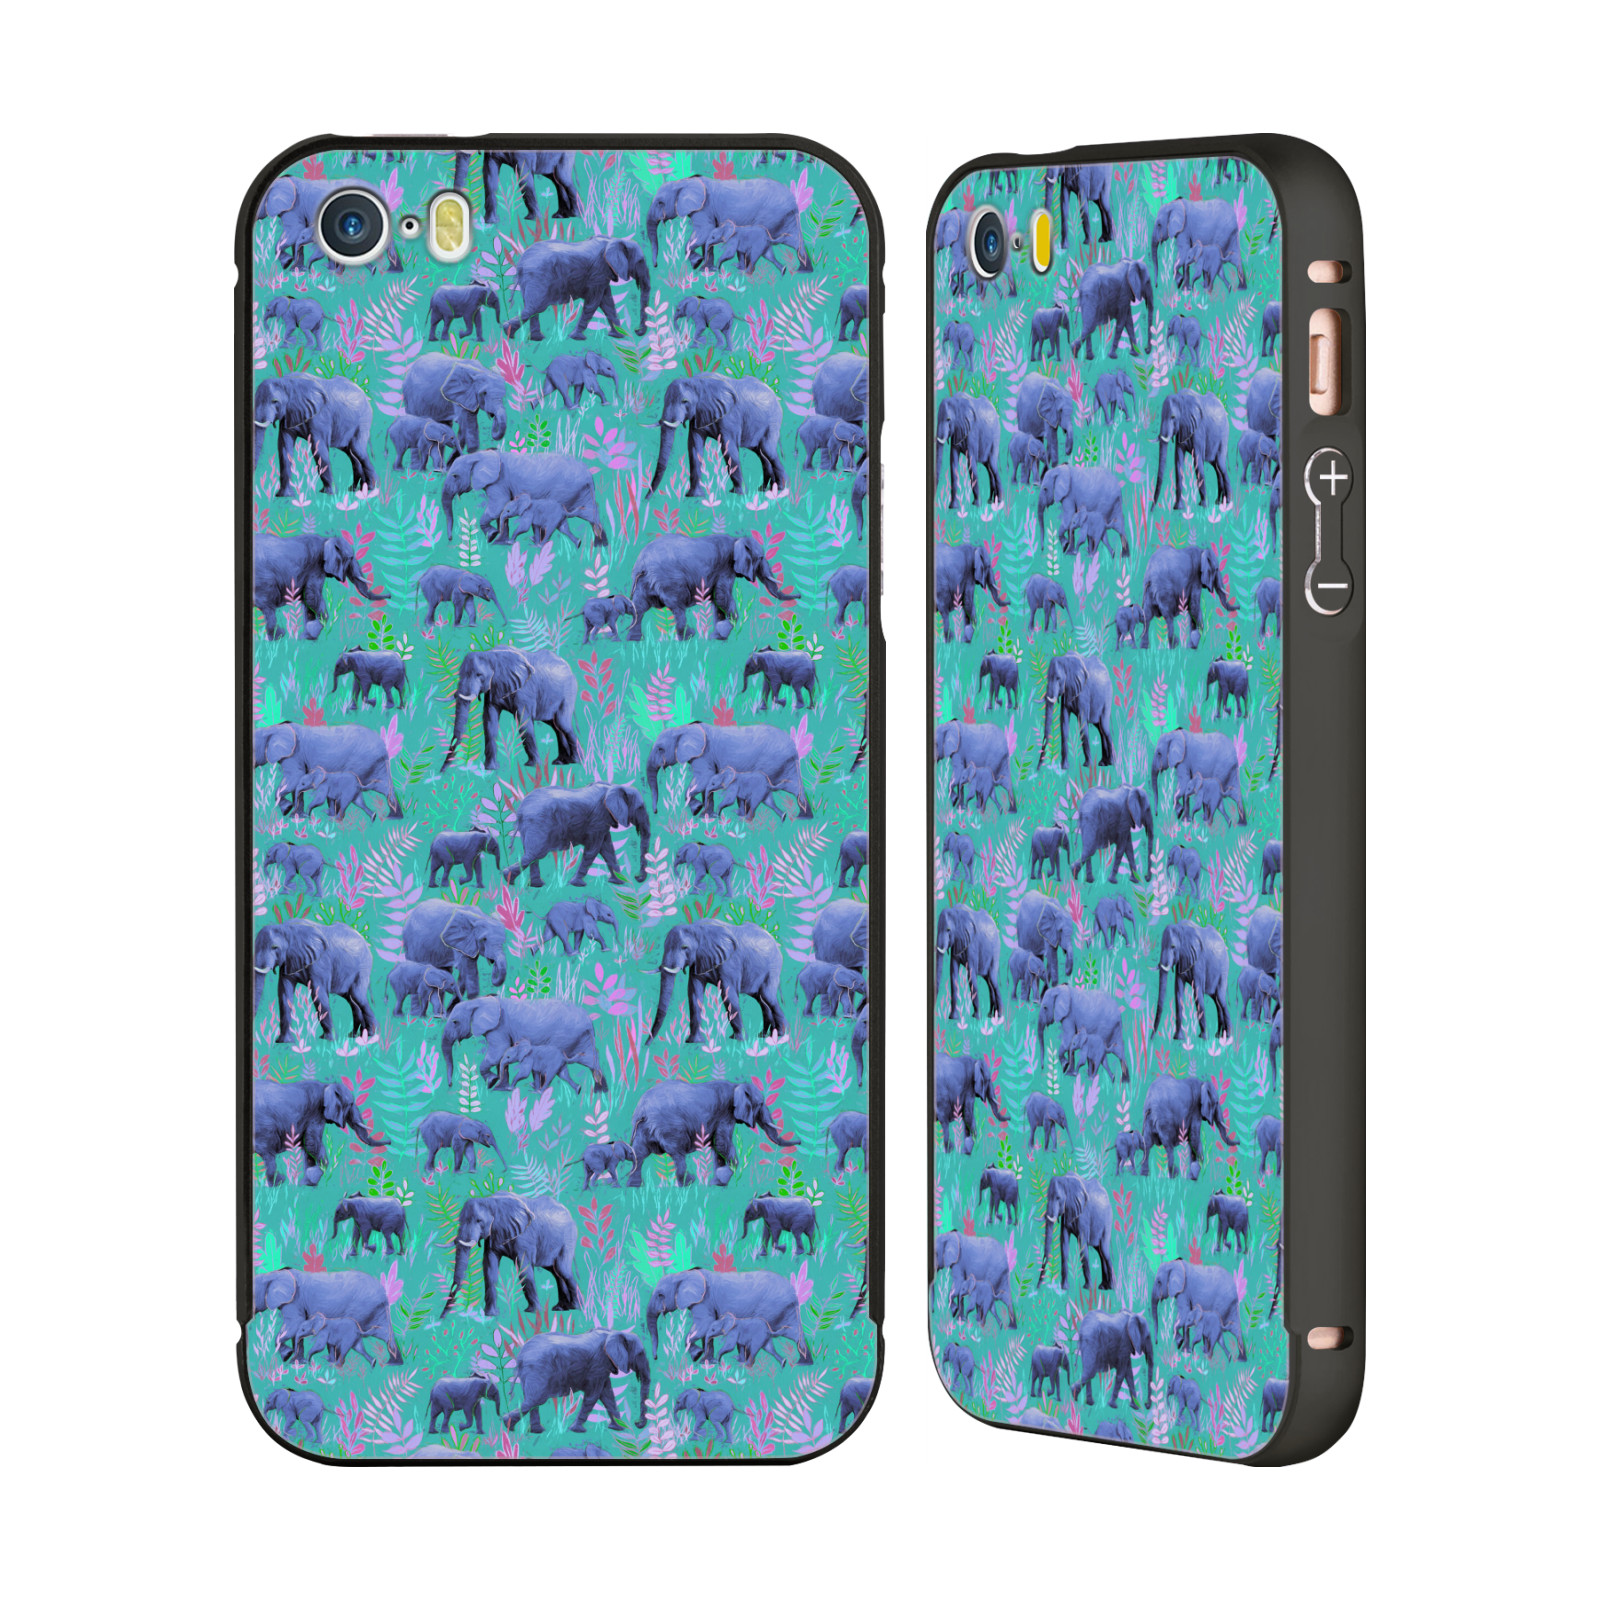 OFFICIAL-MICKLYN-LE-FEUVRE-ANIMALS-BLACK-SLIDER-CASE-FOR-APPLE-iPHONE-PHONES